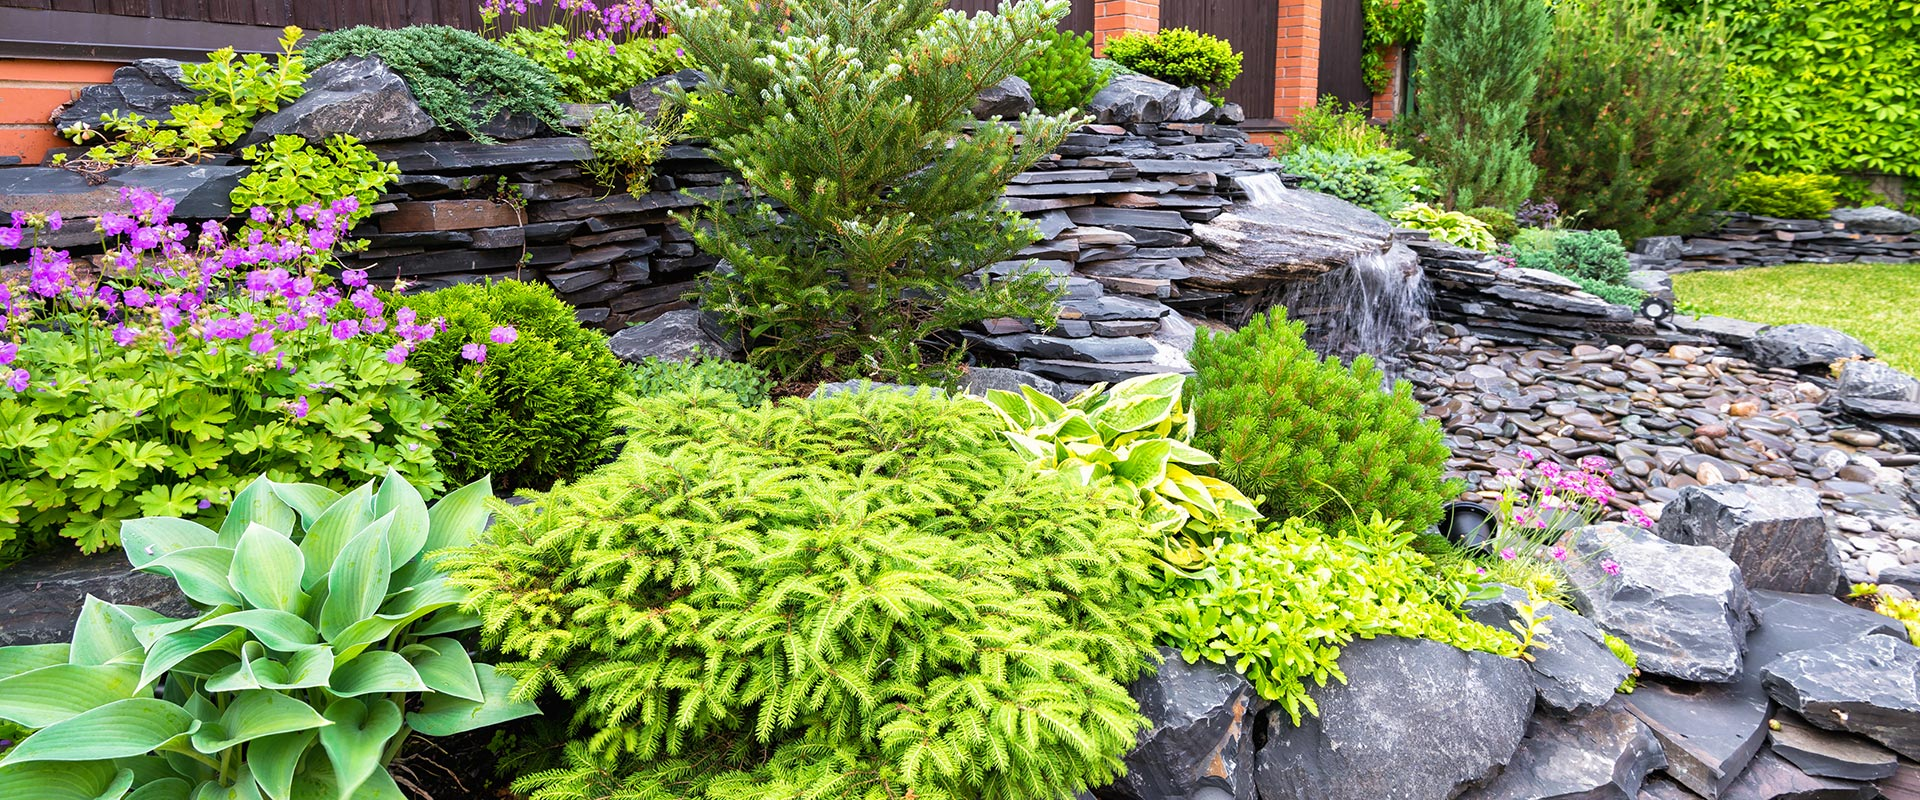 yard with beautifully arranged plants and hardscapes